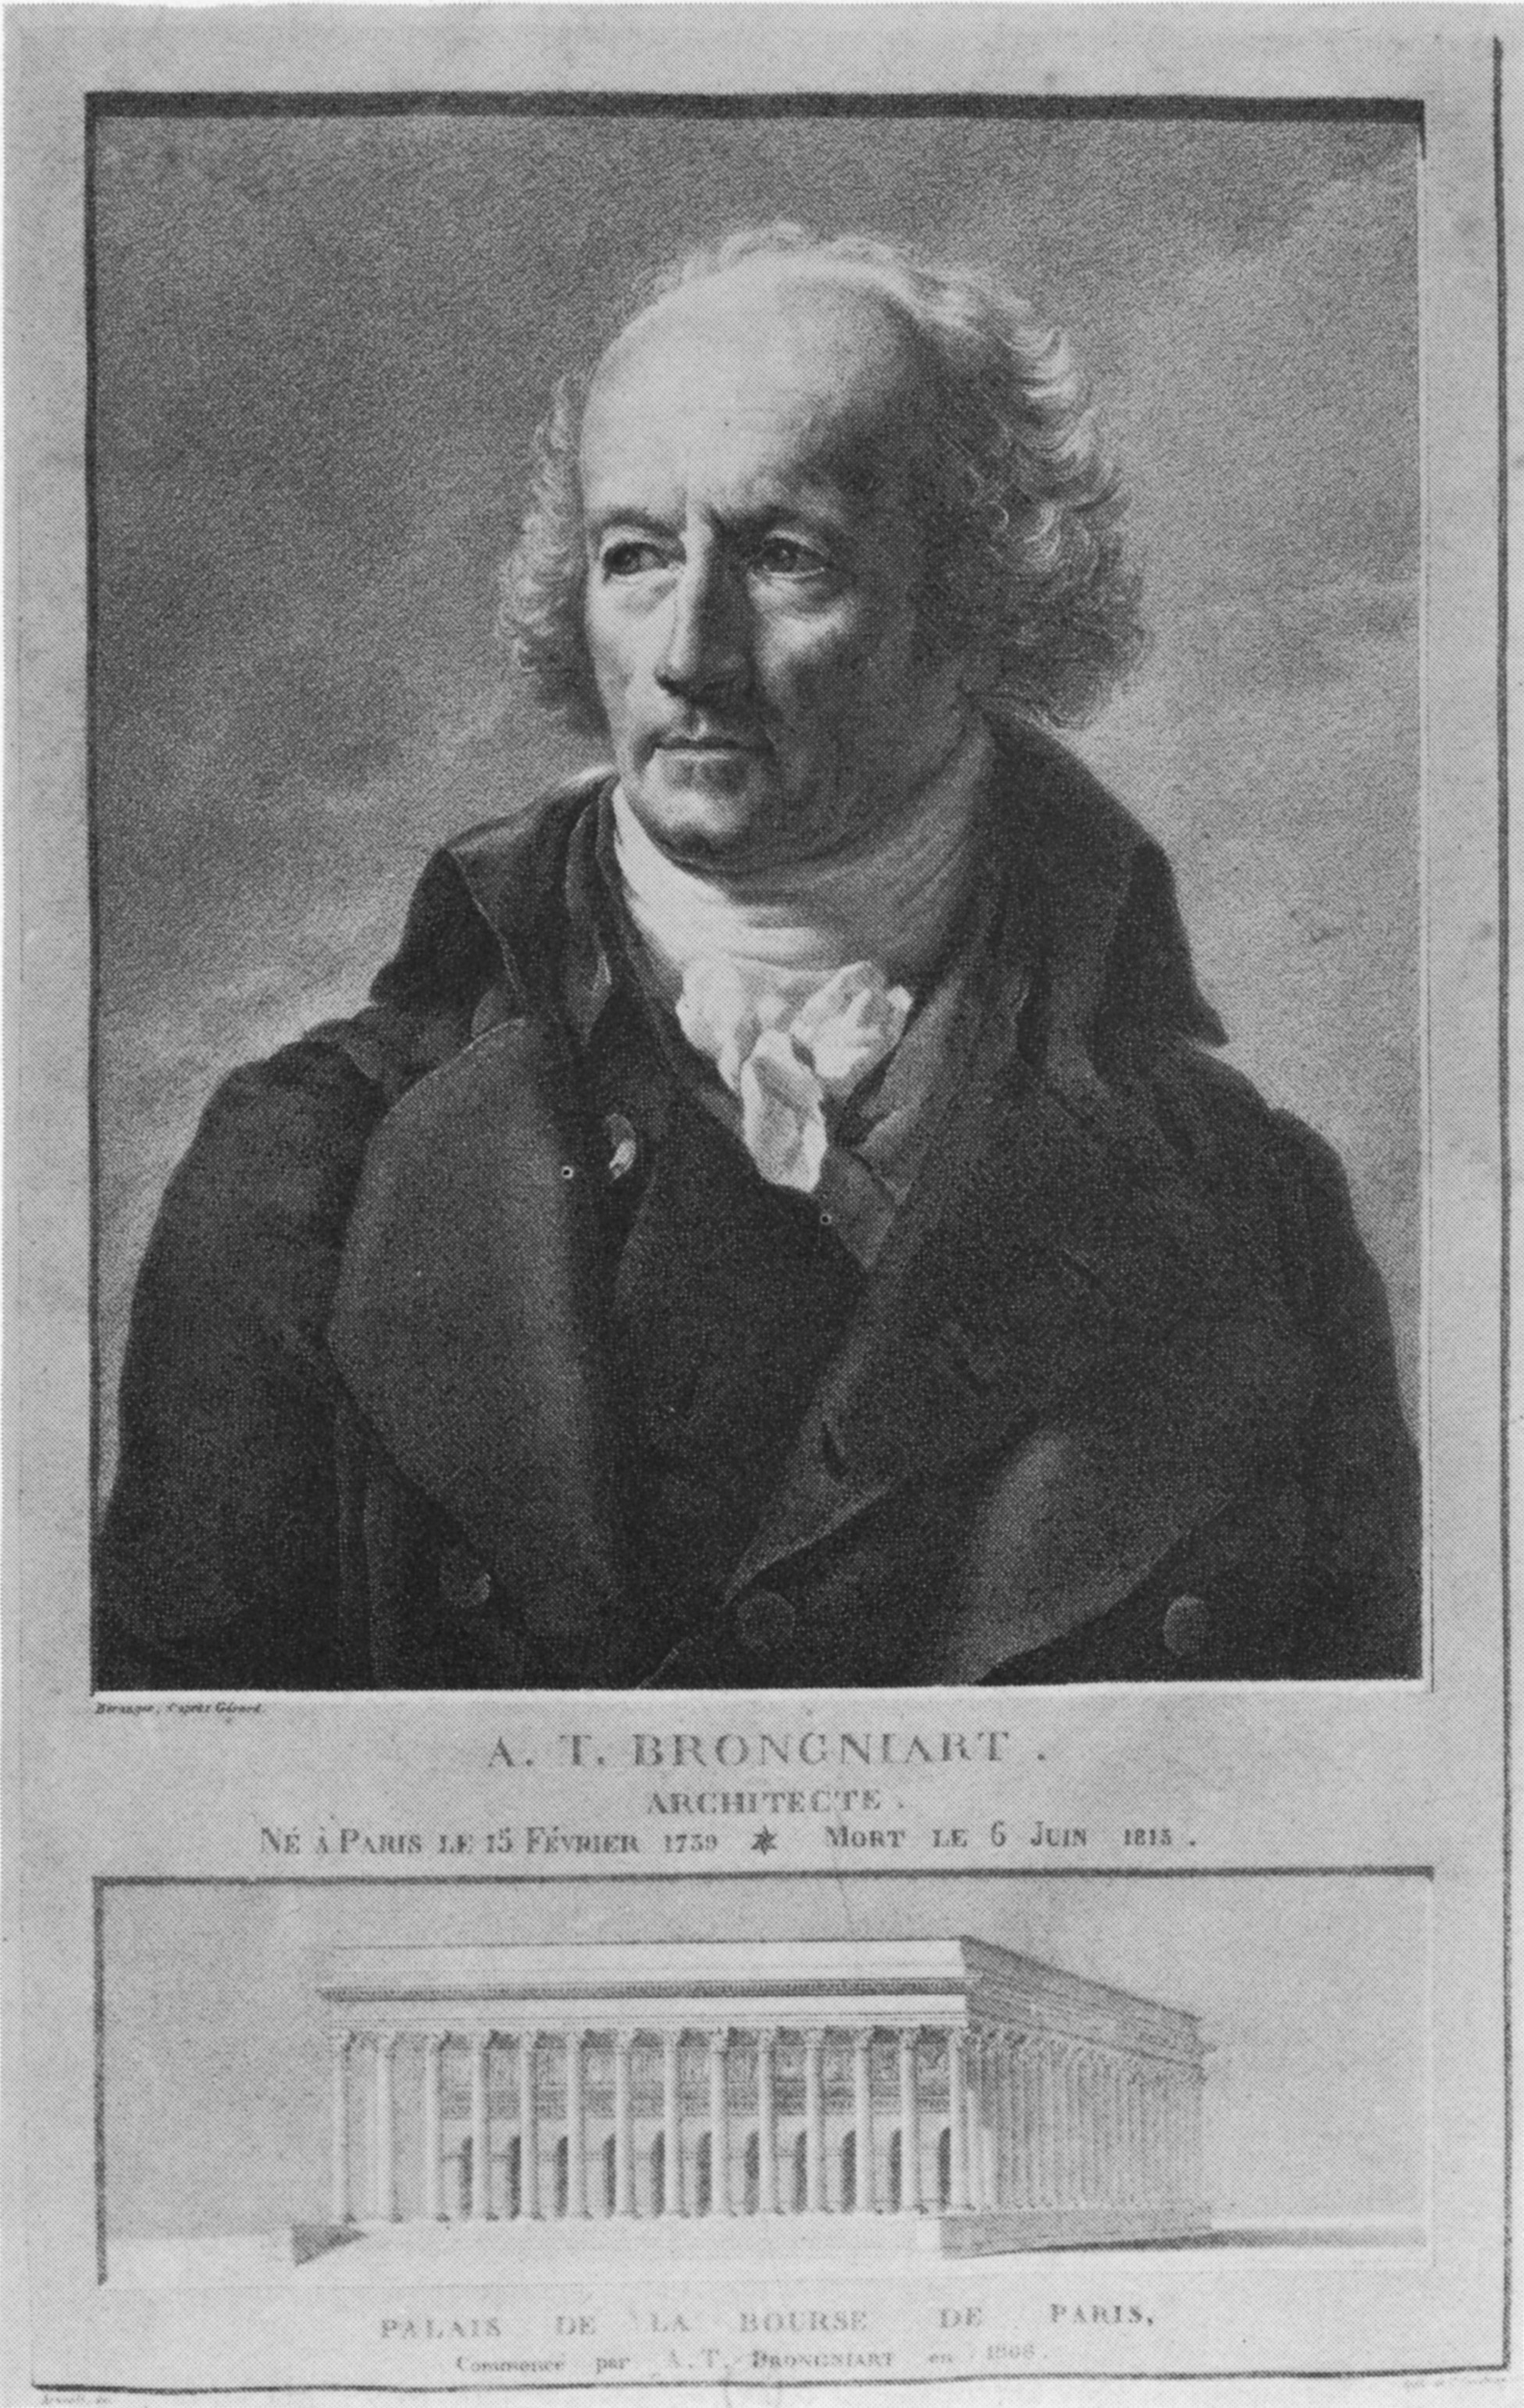 Alexandre-Théodore Brongniart with his design for the [[Paris Bourse